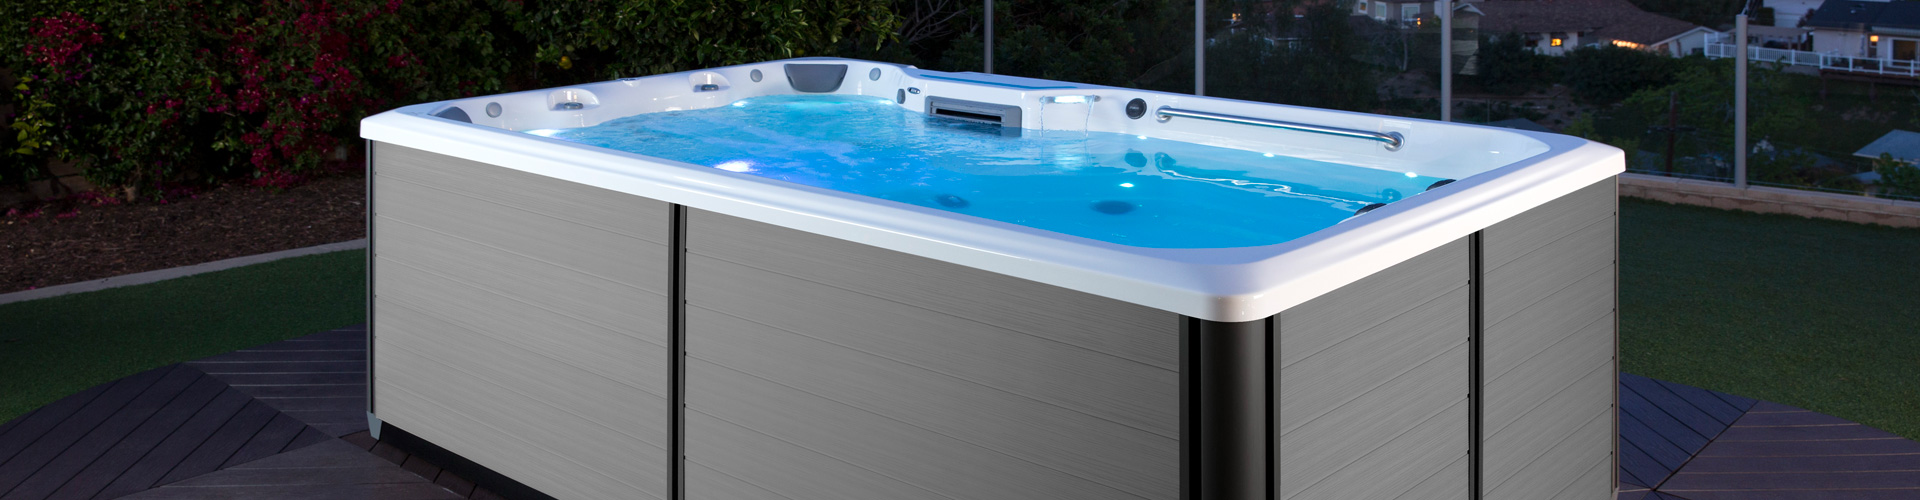 Swim Spa Dealer Prescott Valley Shares 3 Ways to Exercise in an Endless Pool